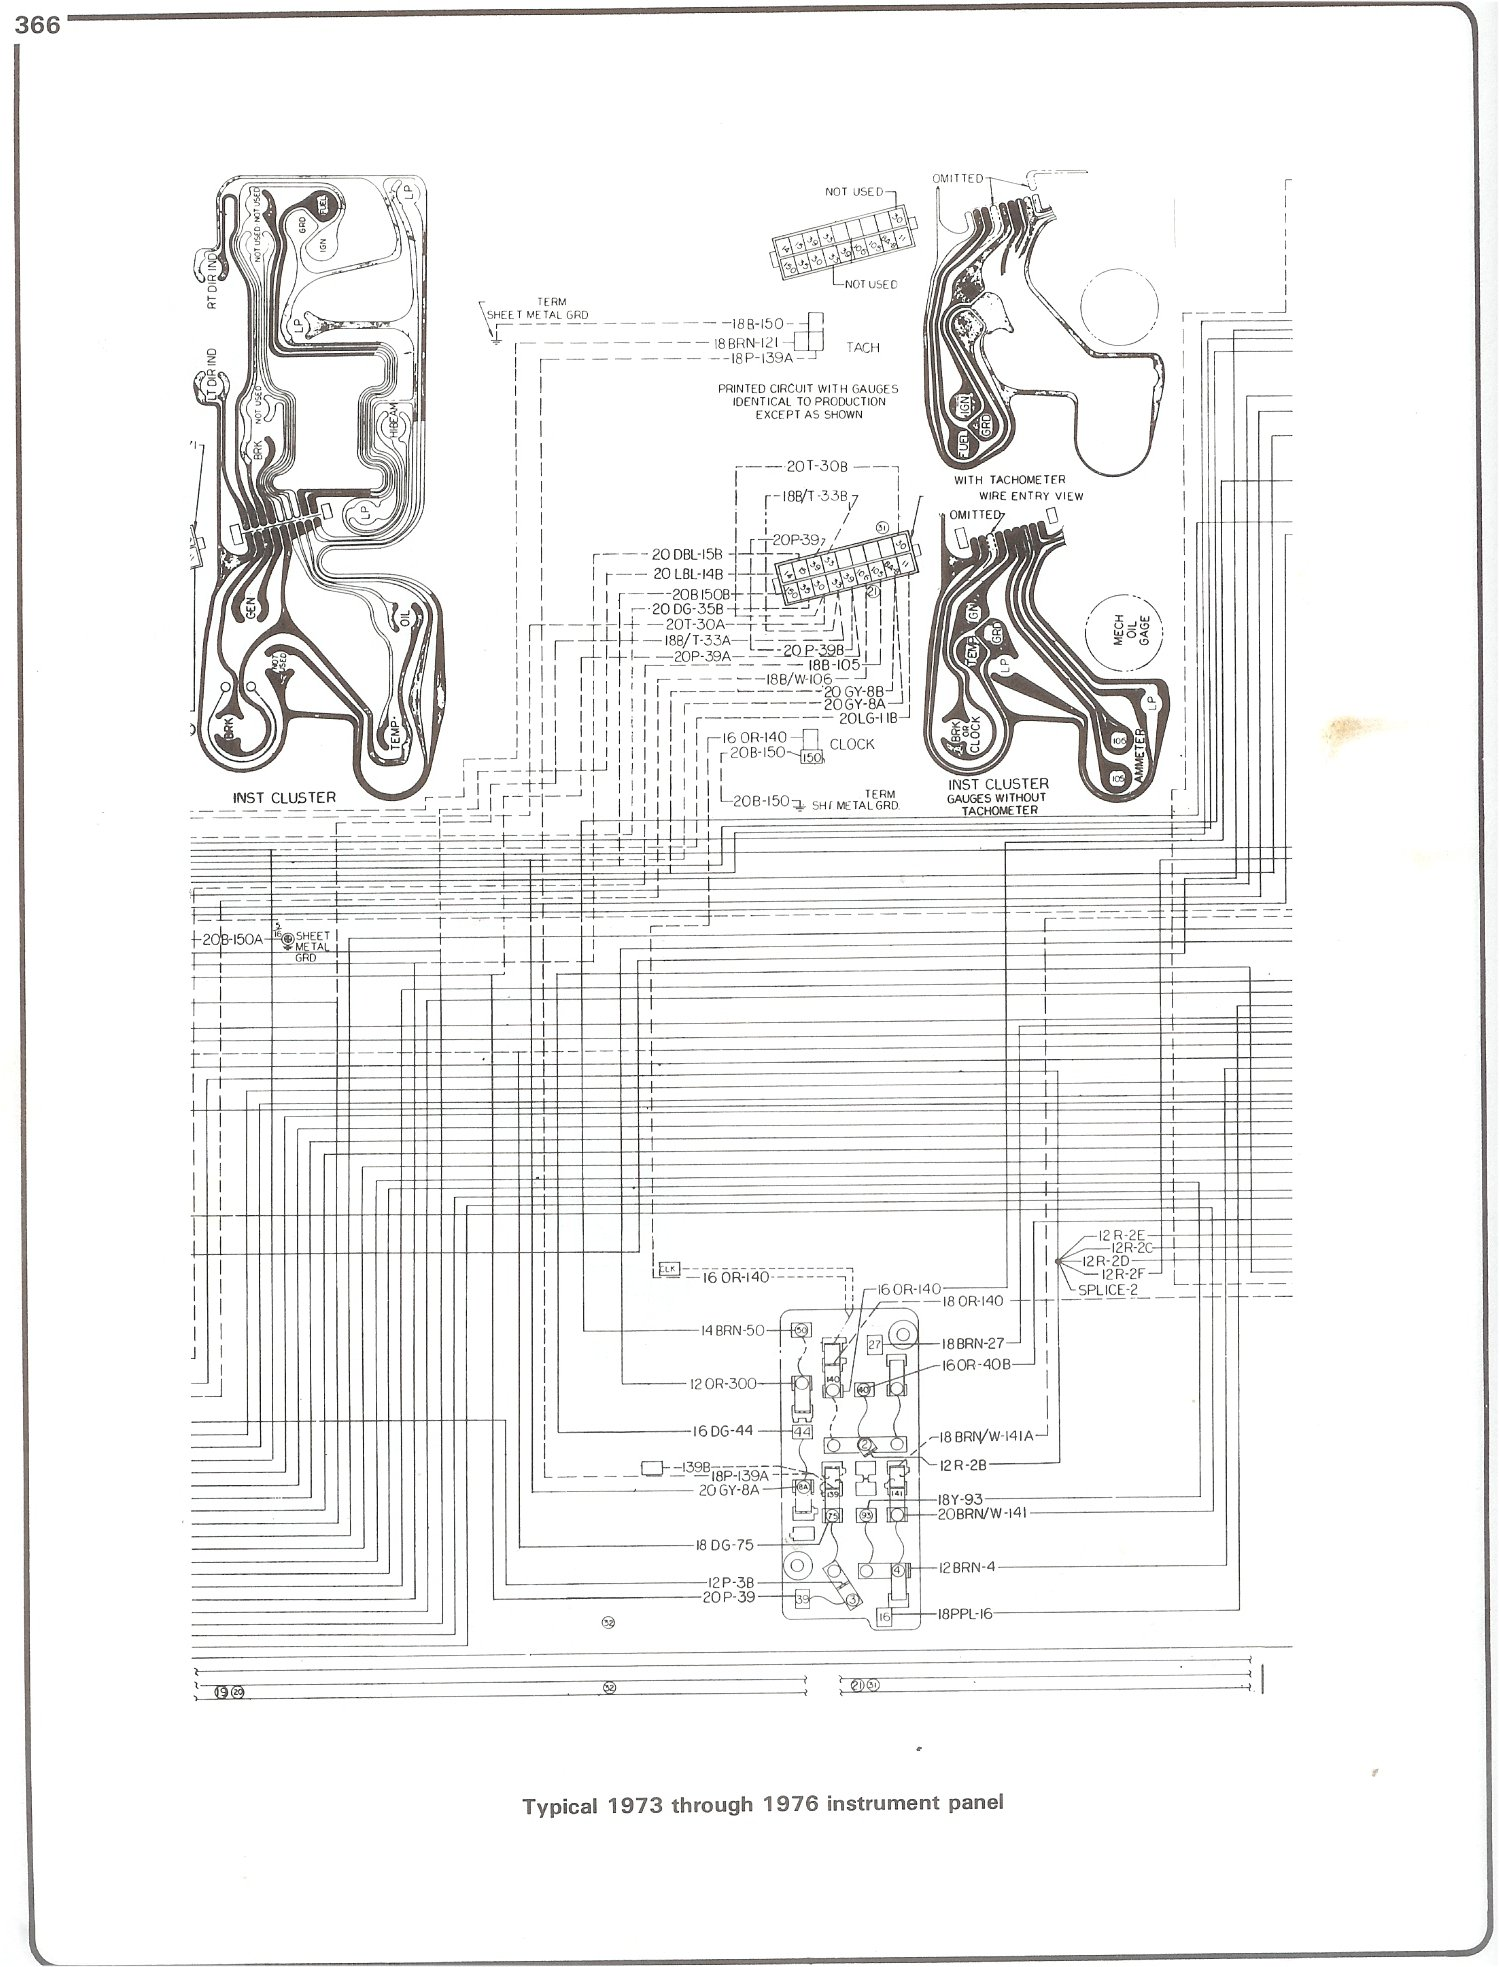 73 76_instrument complete 73 87 wiring diagrams 2008 Chevy Silverado Wiring Diagram at bayanpartner.co